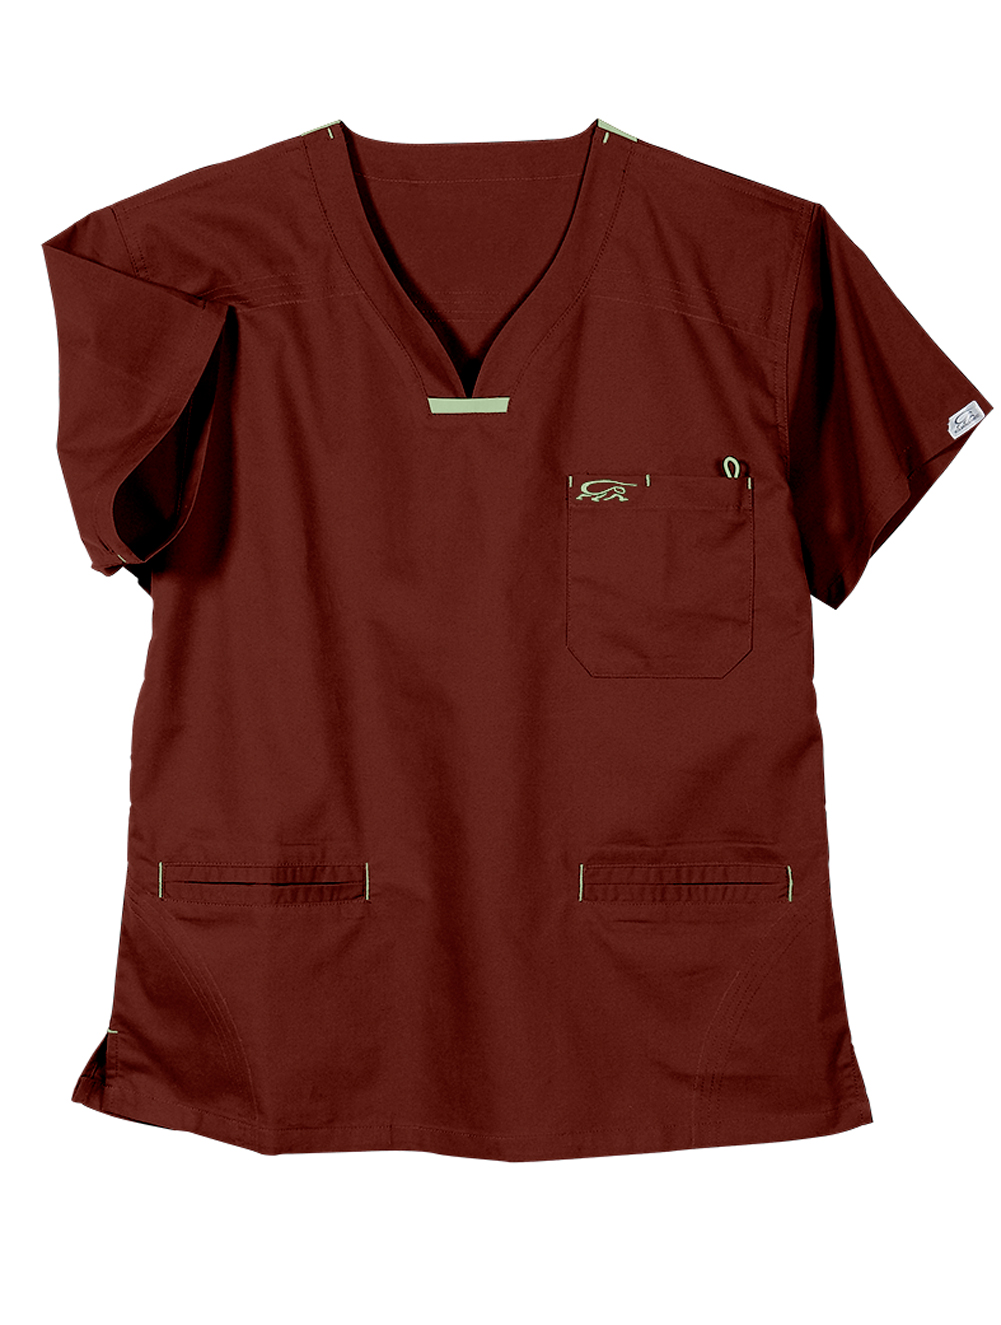 f44024fbb27 IguanaMed Scrubs - Dare to be different